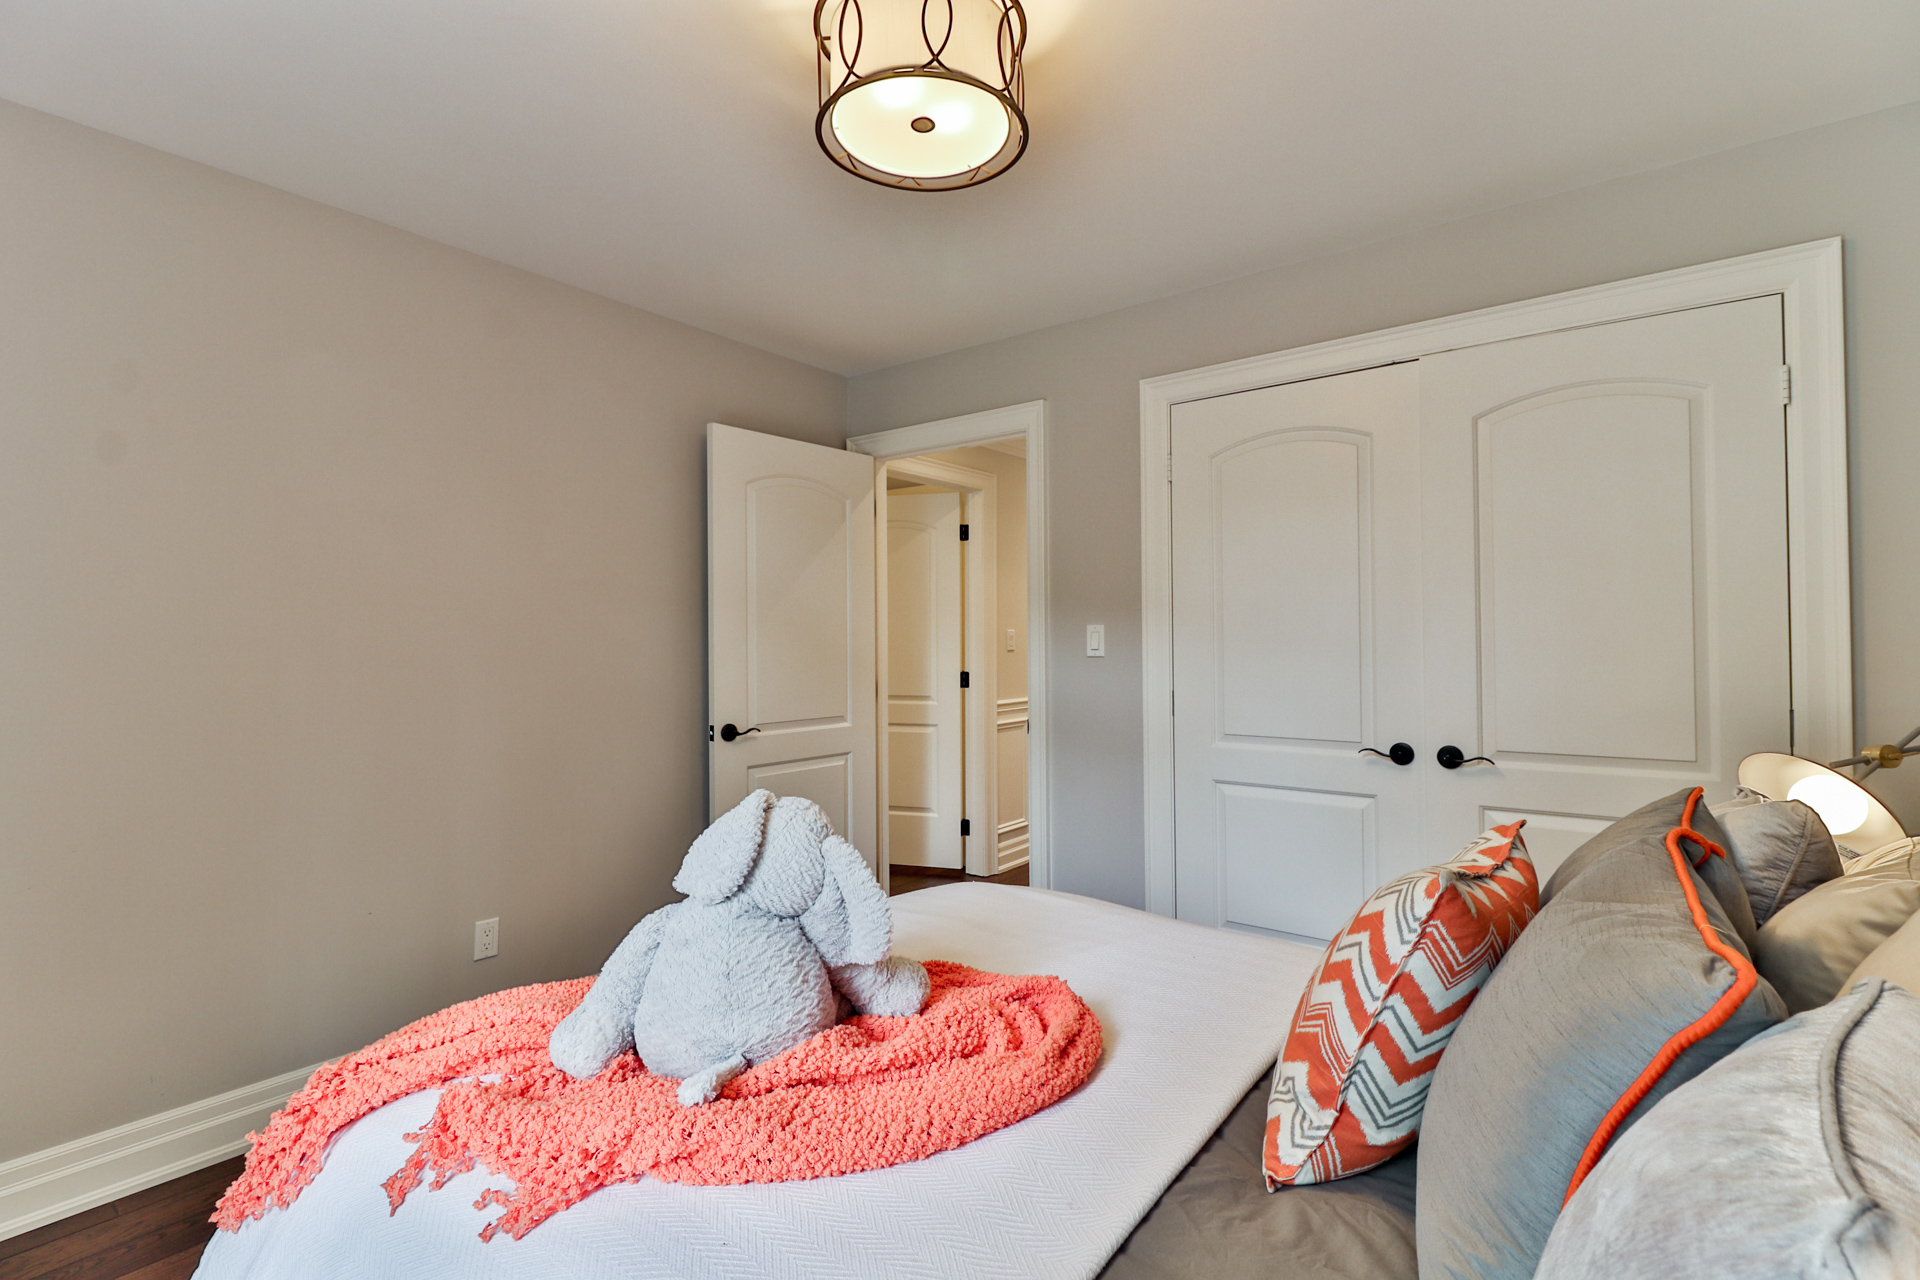 Third Bedroom Entryway, 149 Shaver, Etobicoke Home Staging